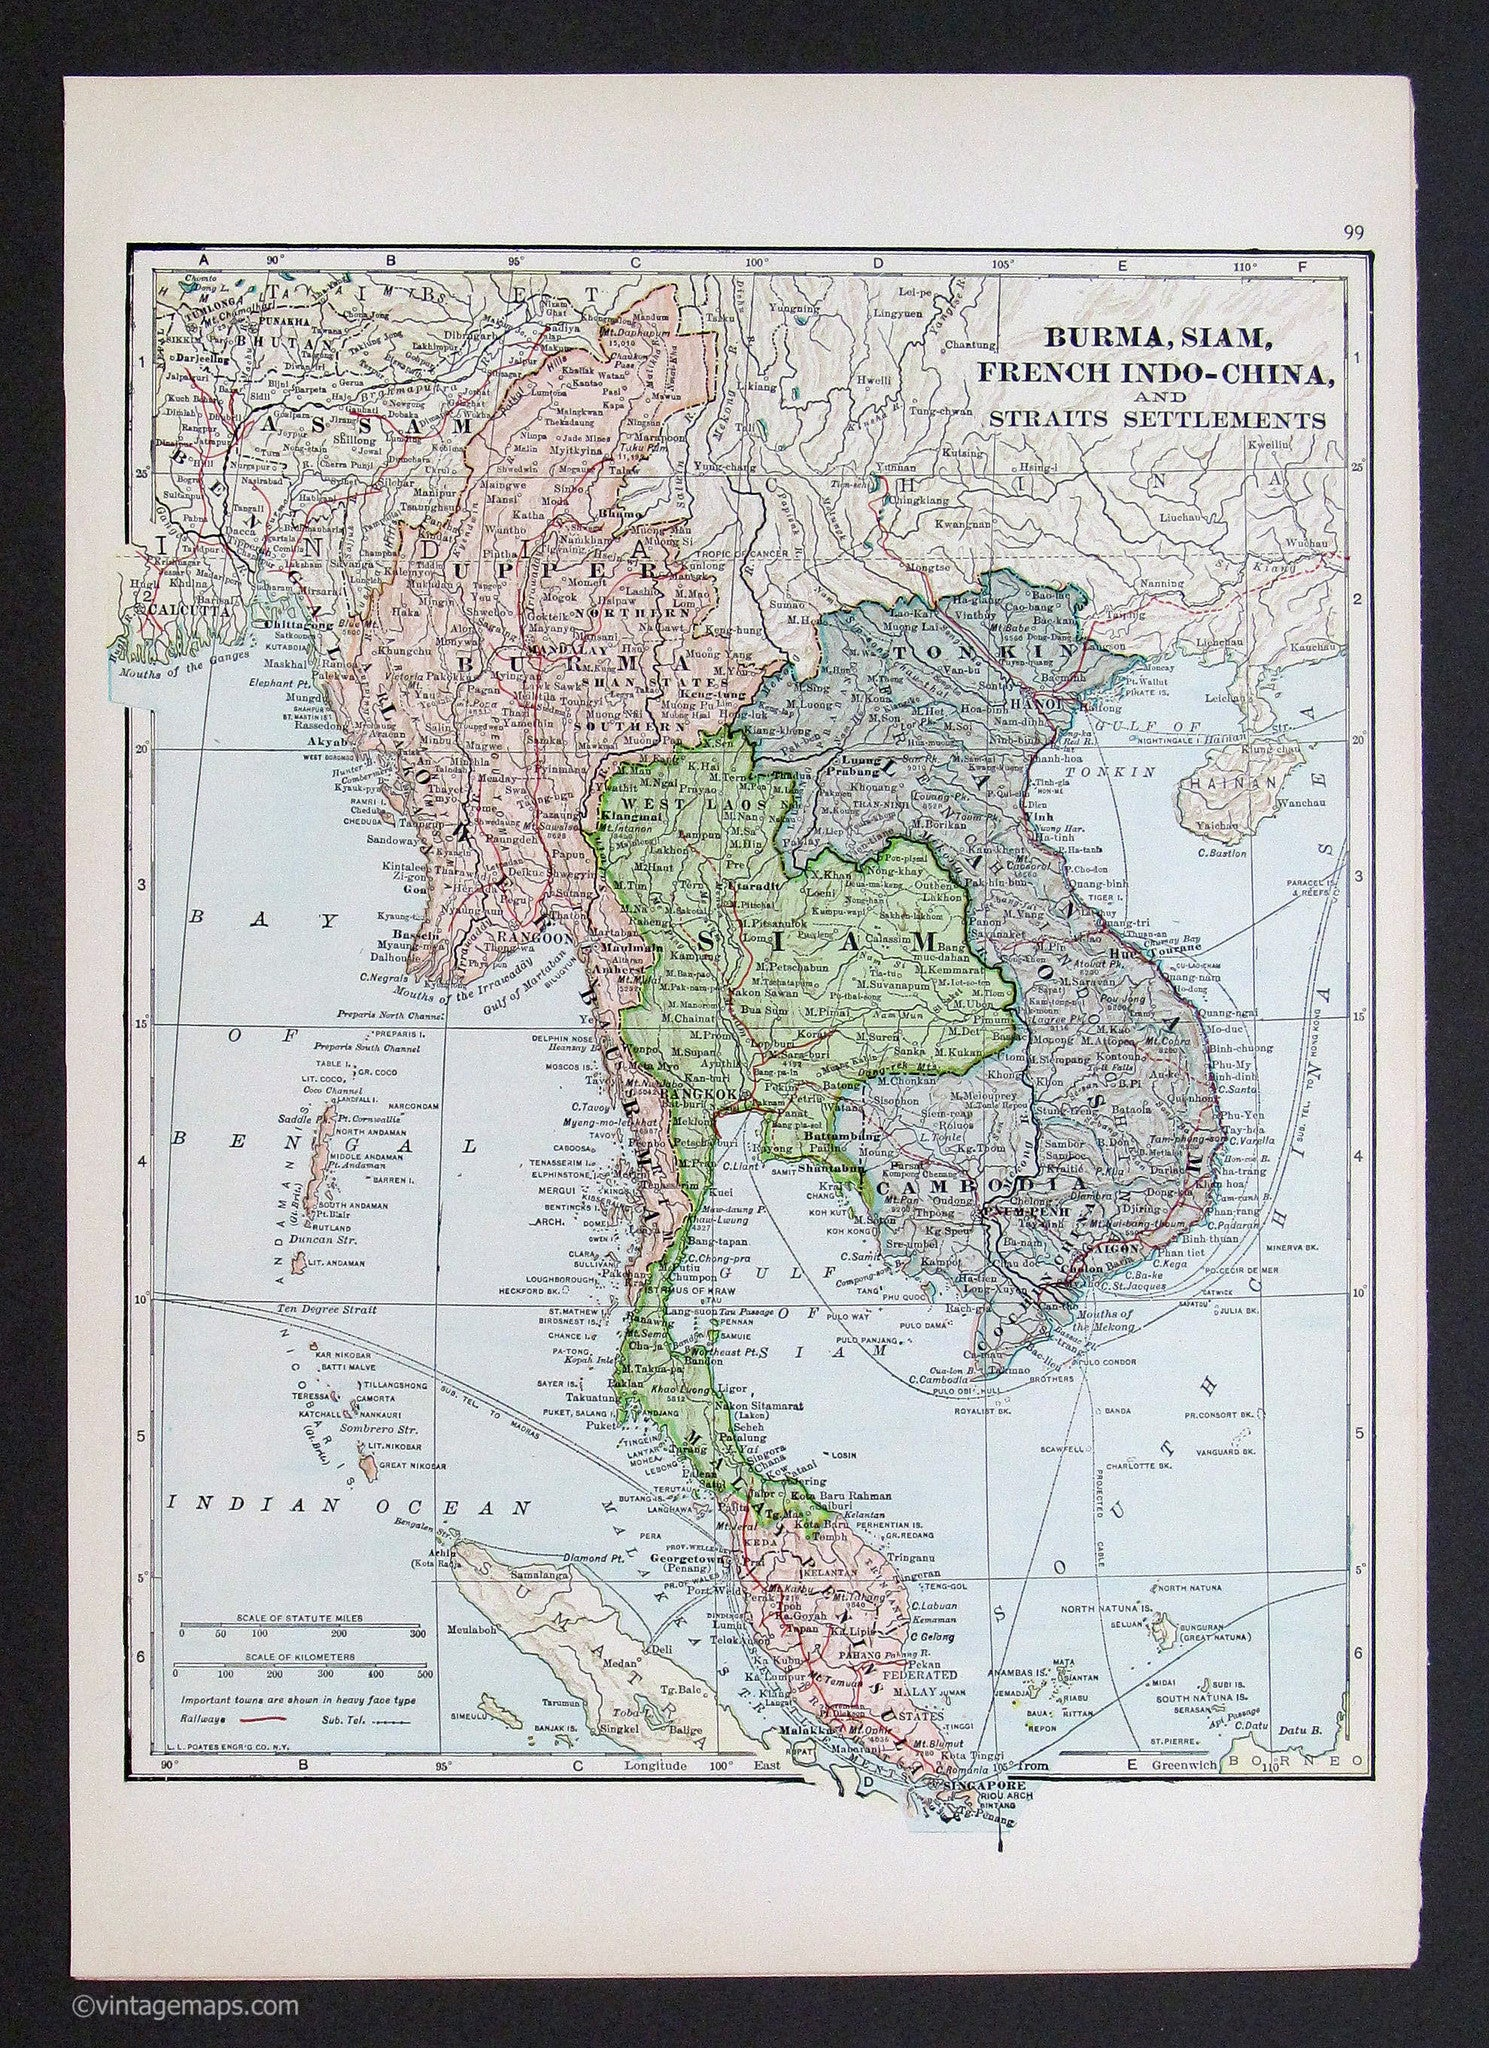 Burma siam french indo china vietnam 1933 vintage maps old burma siam french indo china vietnam map gumiabroncs Images